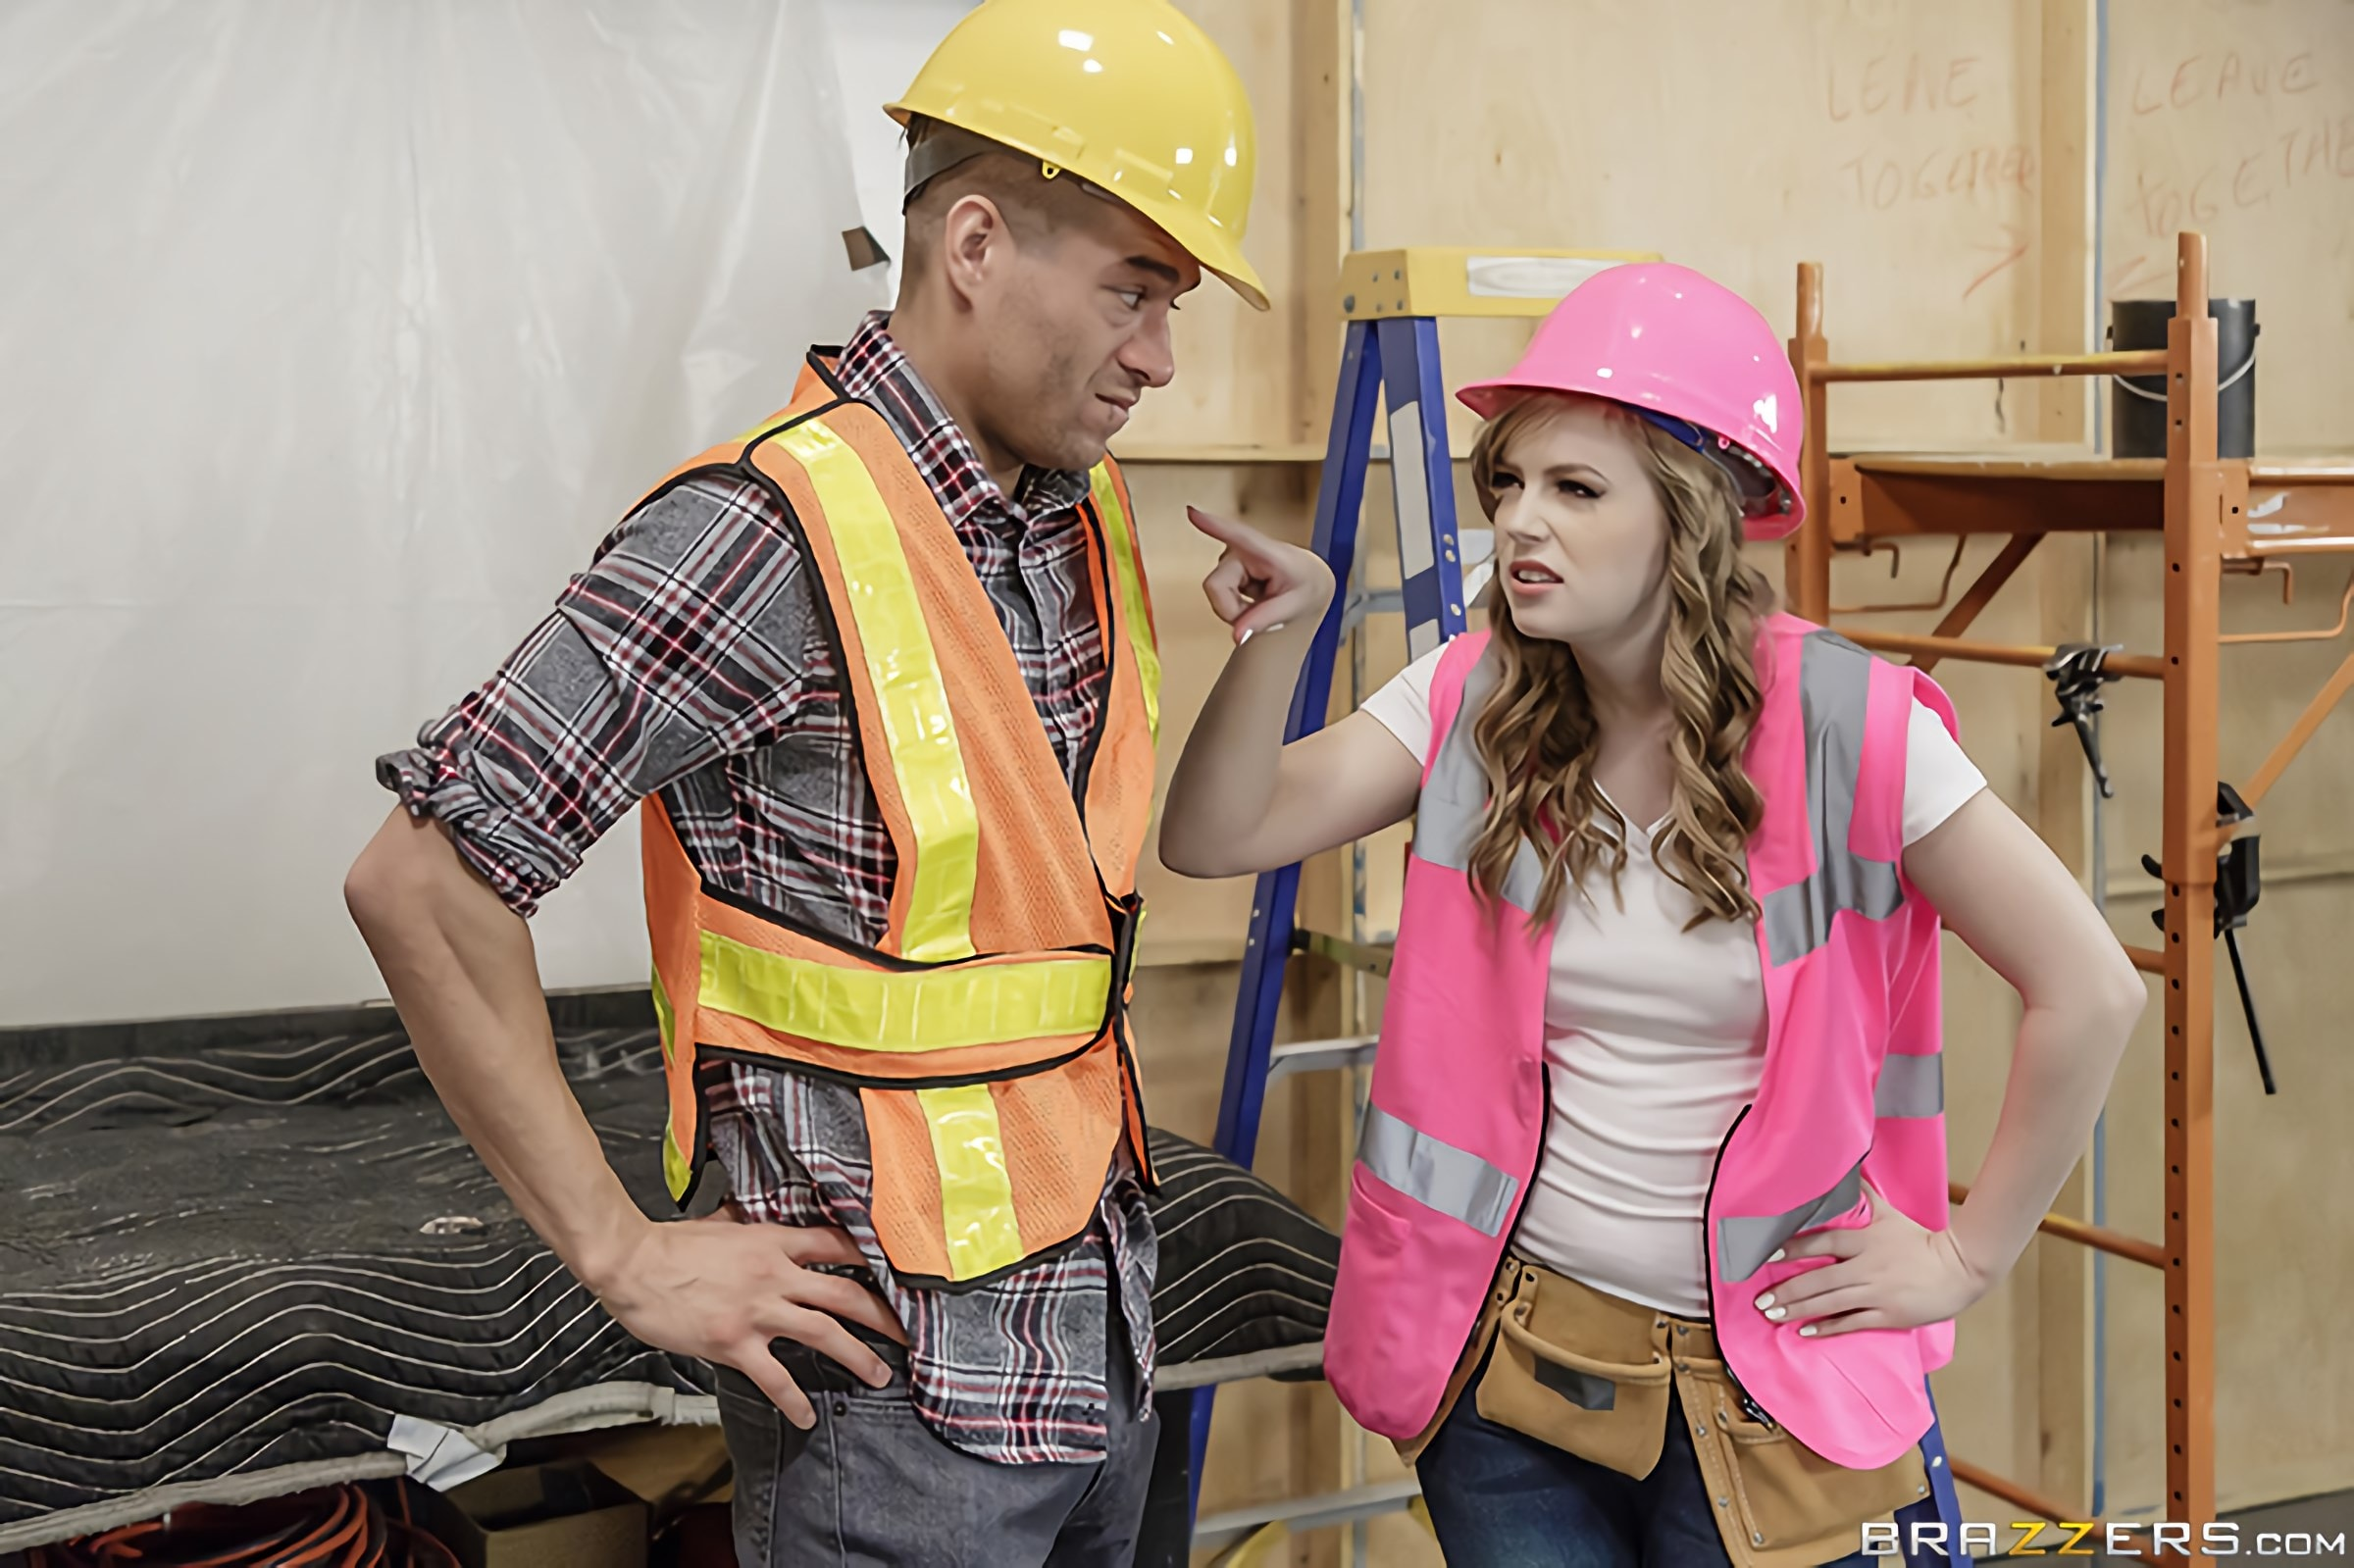 Brazzers 'The Foreman Is A Whore, Man' starring Dolly Leigh (photo 1)